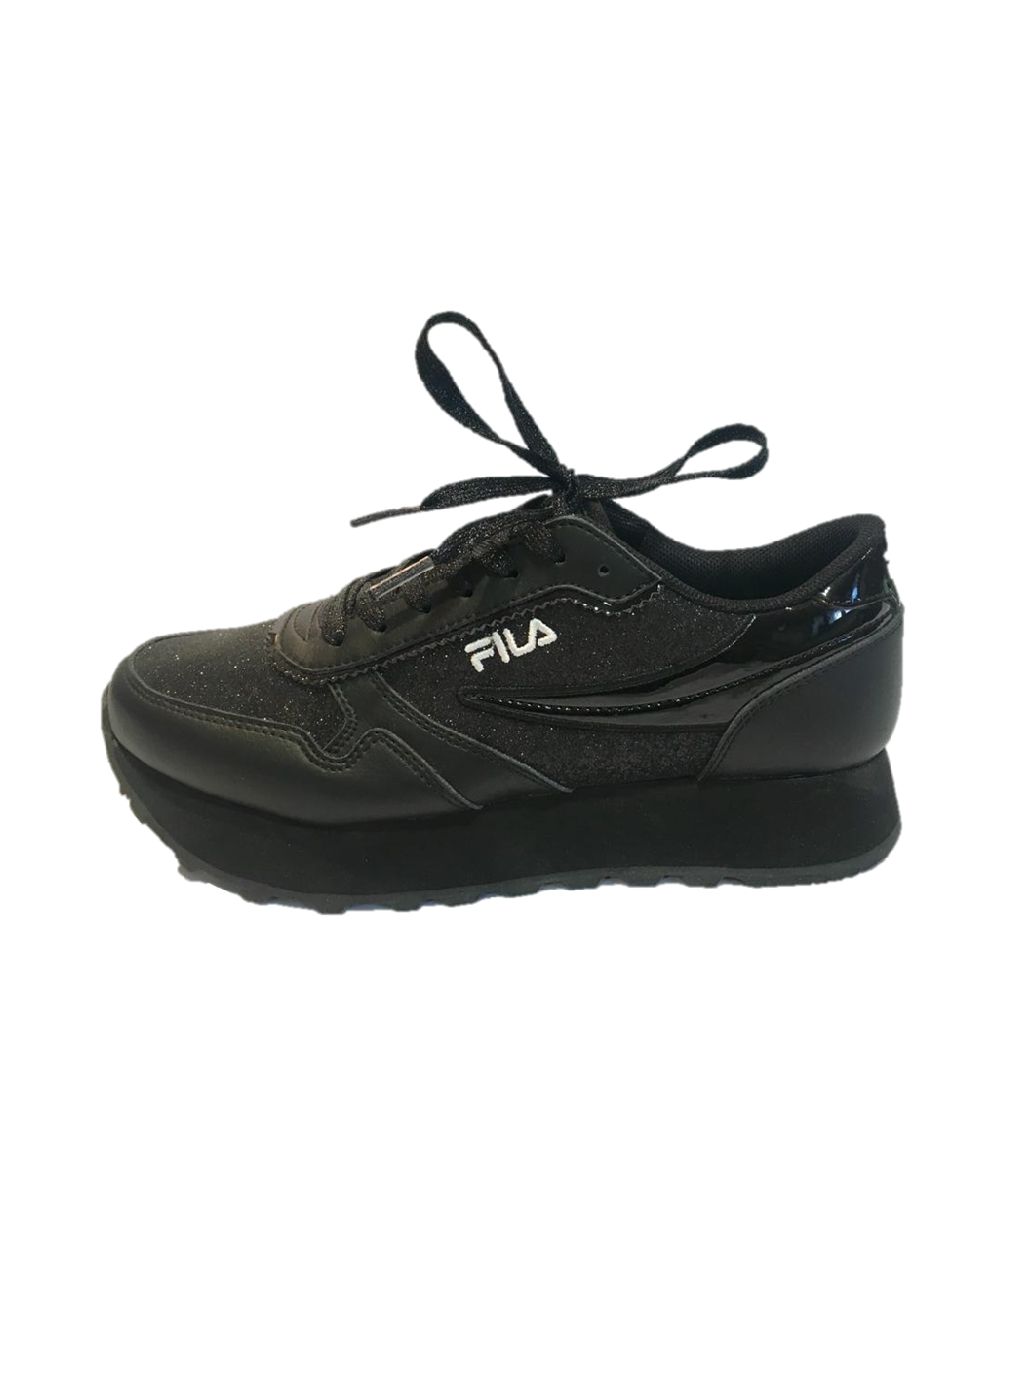 100% authentique db4c4 4d864 Basket Femme FILA Orbit Zeppa Glam Noir | SHOWROOMVIP : Baskets basses Femme